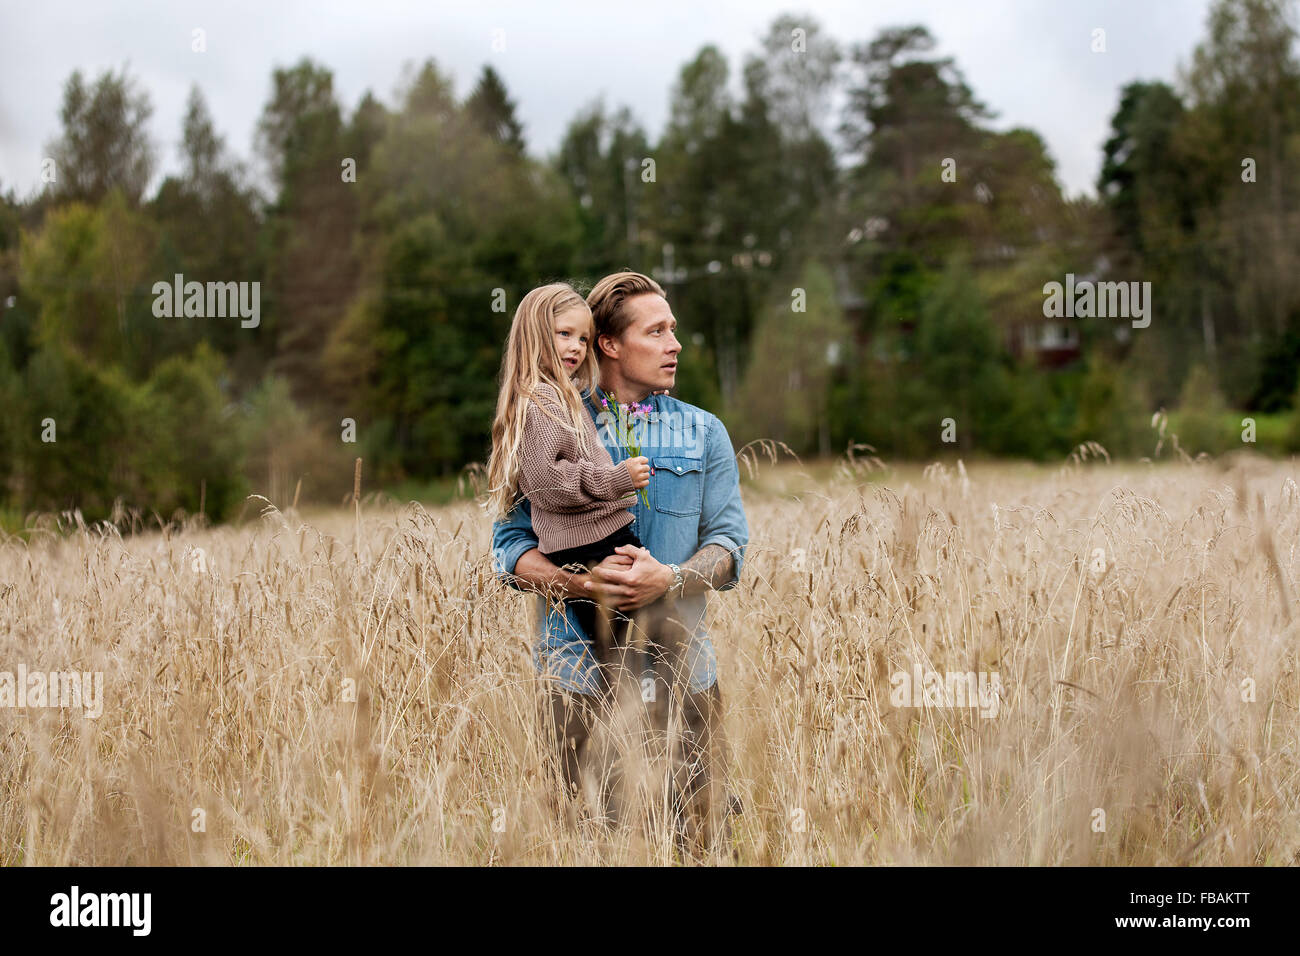 Finland, Uusimaa, Raasepori, Karjaa, Father with his daughter (6-7) looking at view - Stock Image